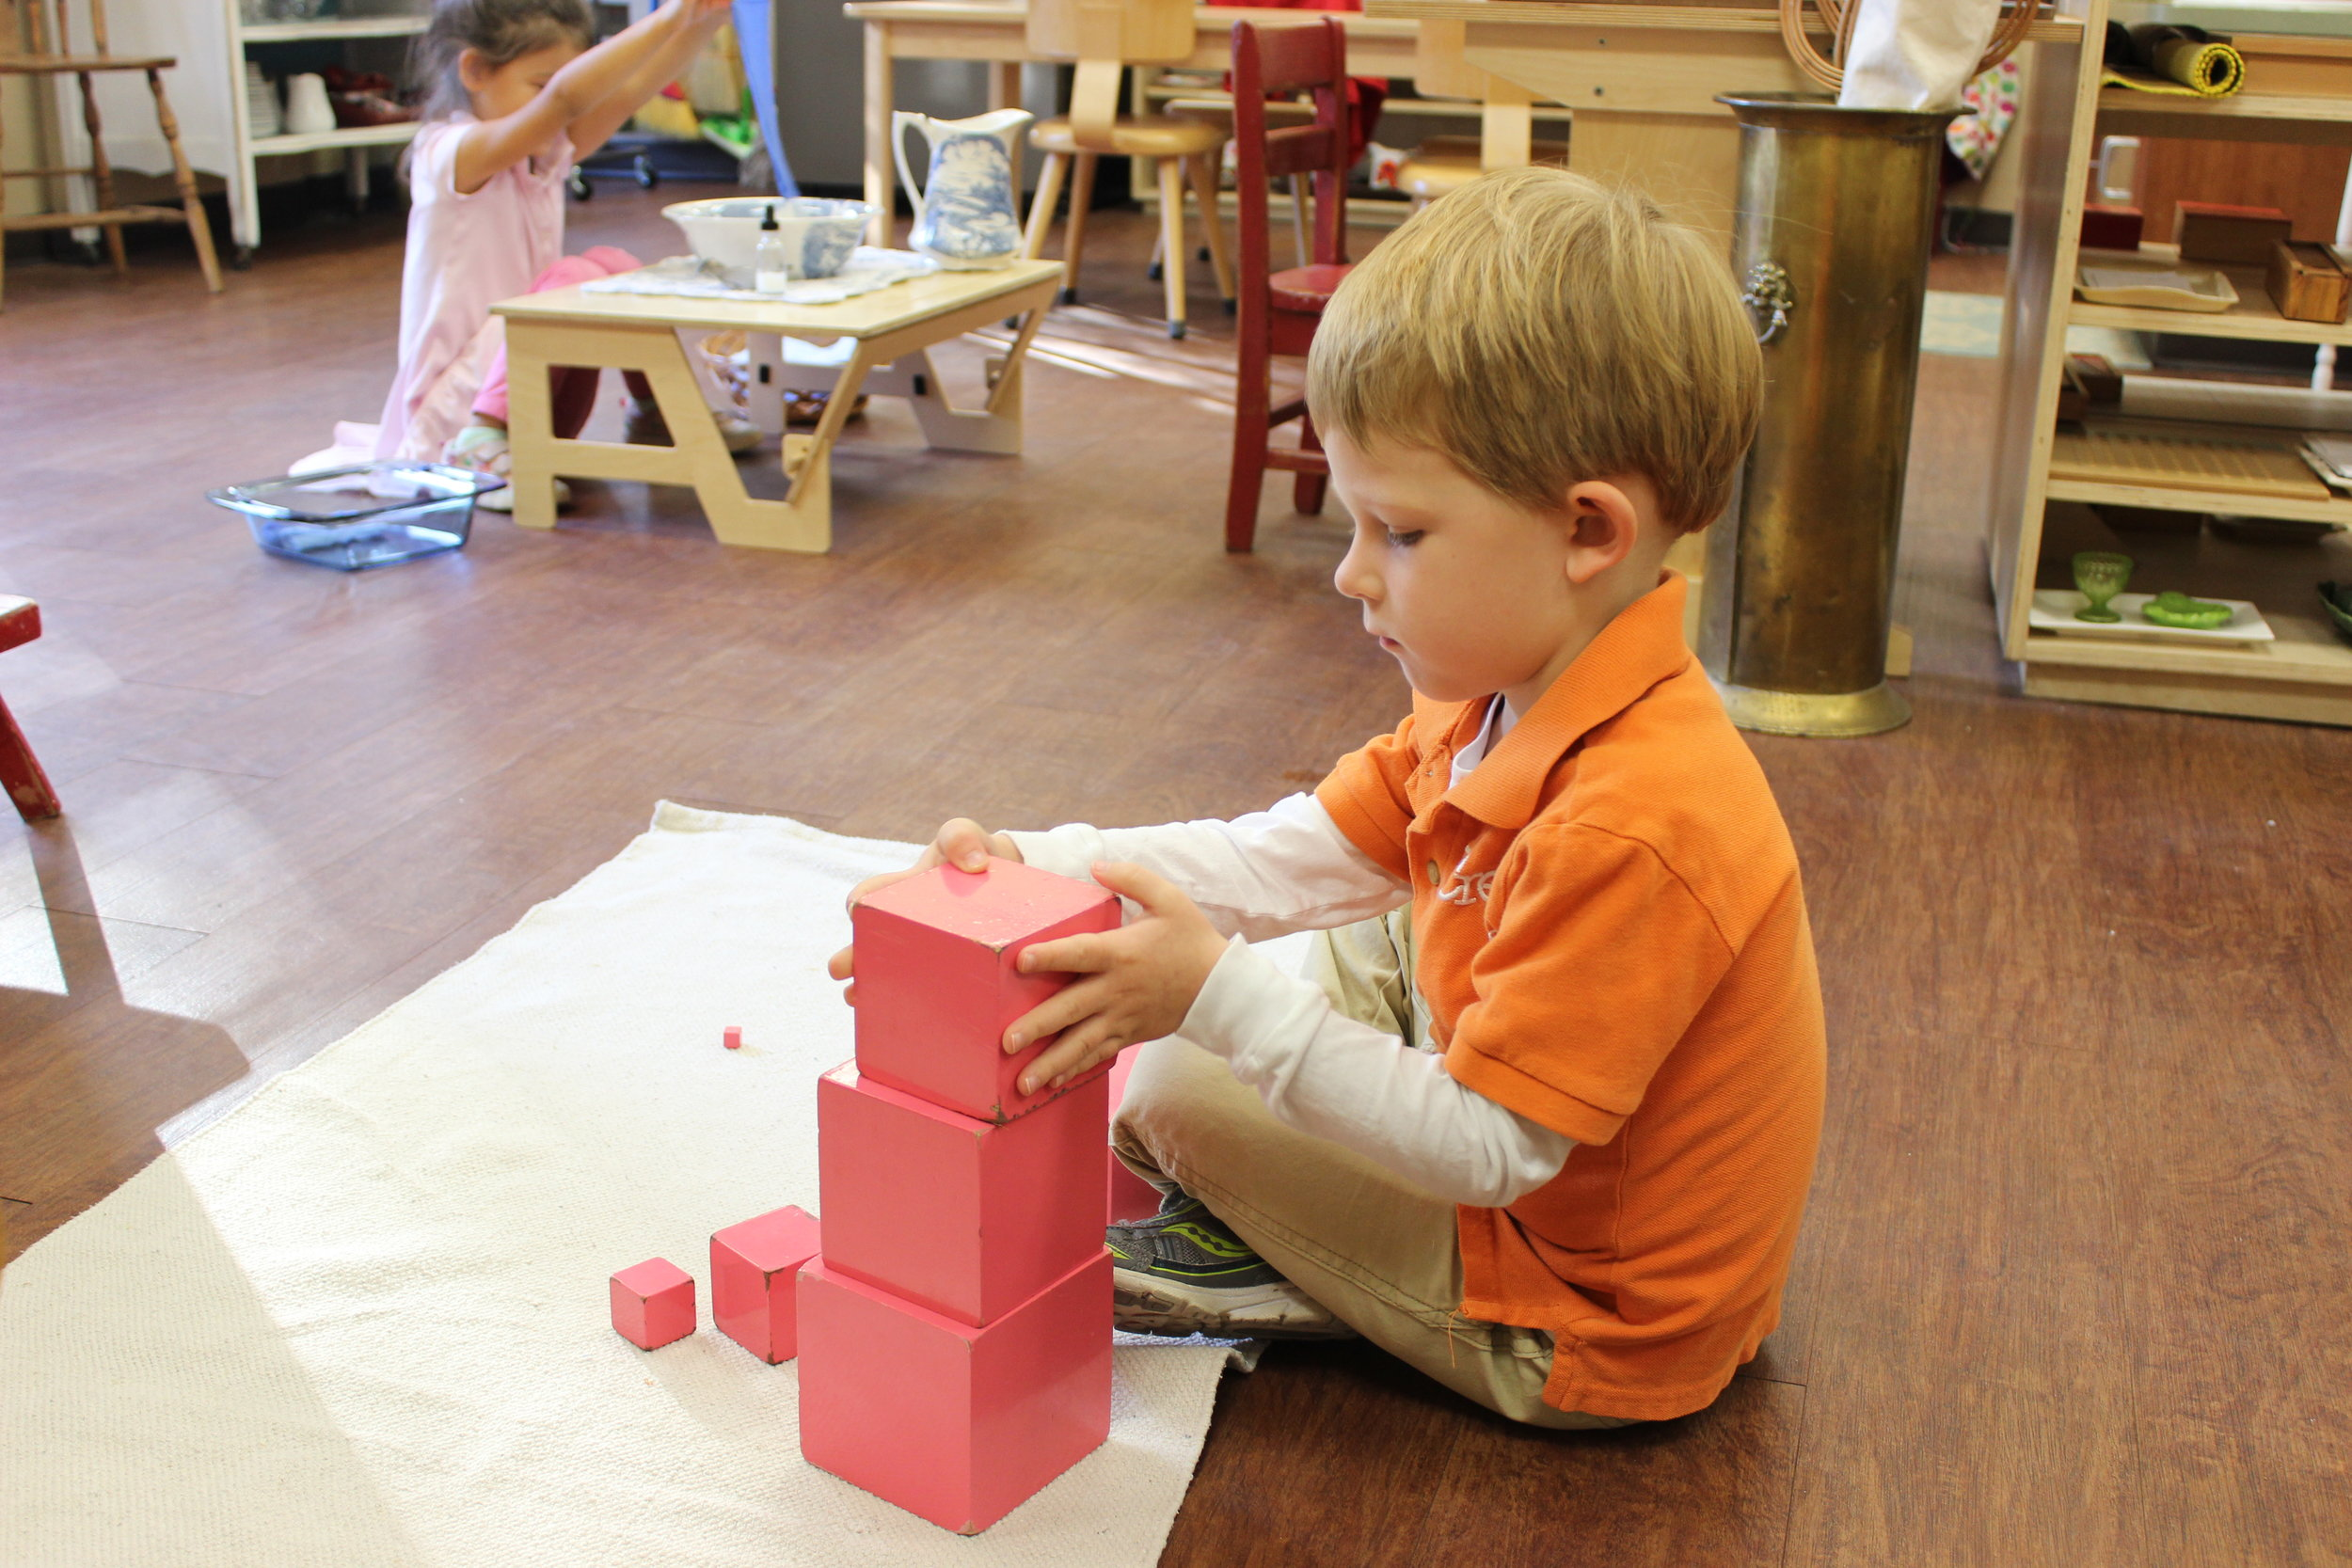 Building the Pink Tower